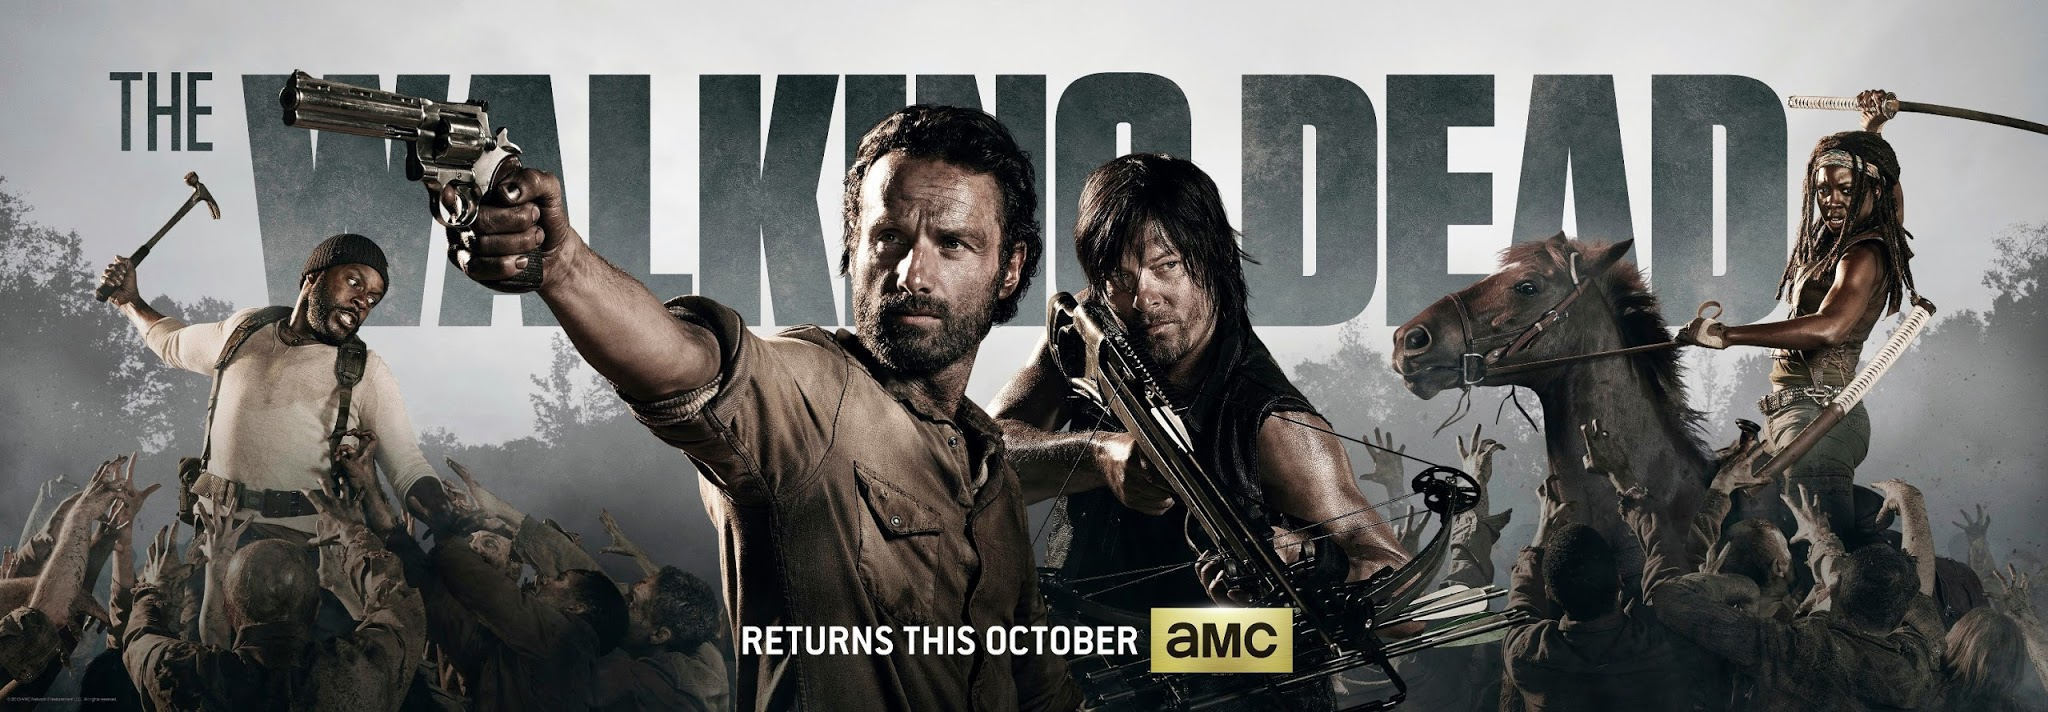 The Walking Dead Poster Temporada 4 HQ